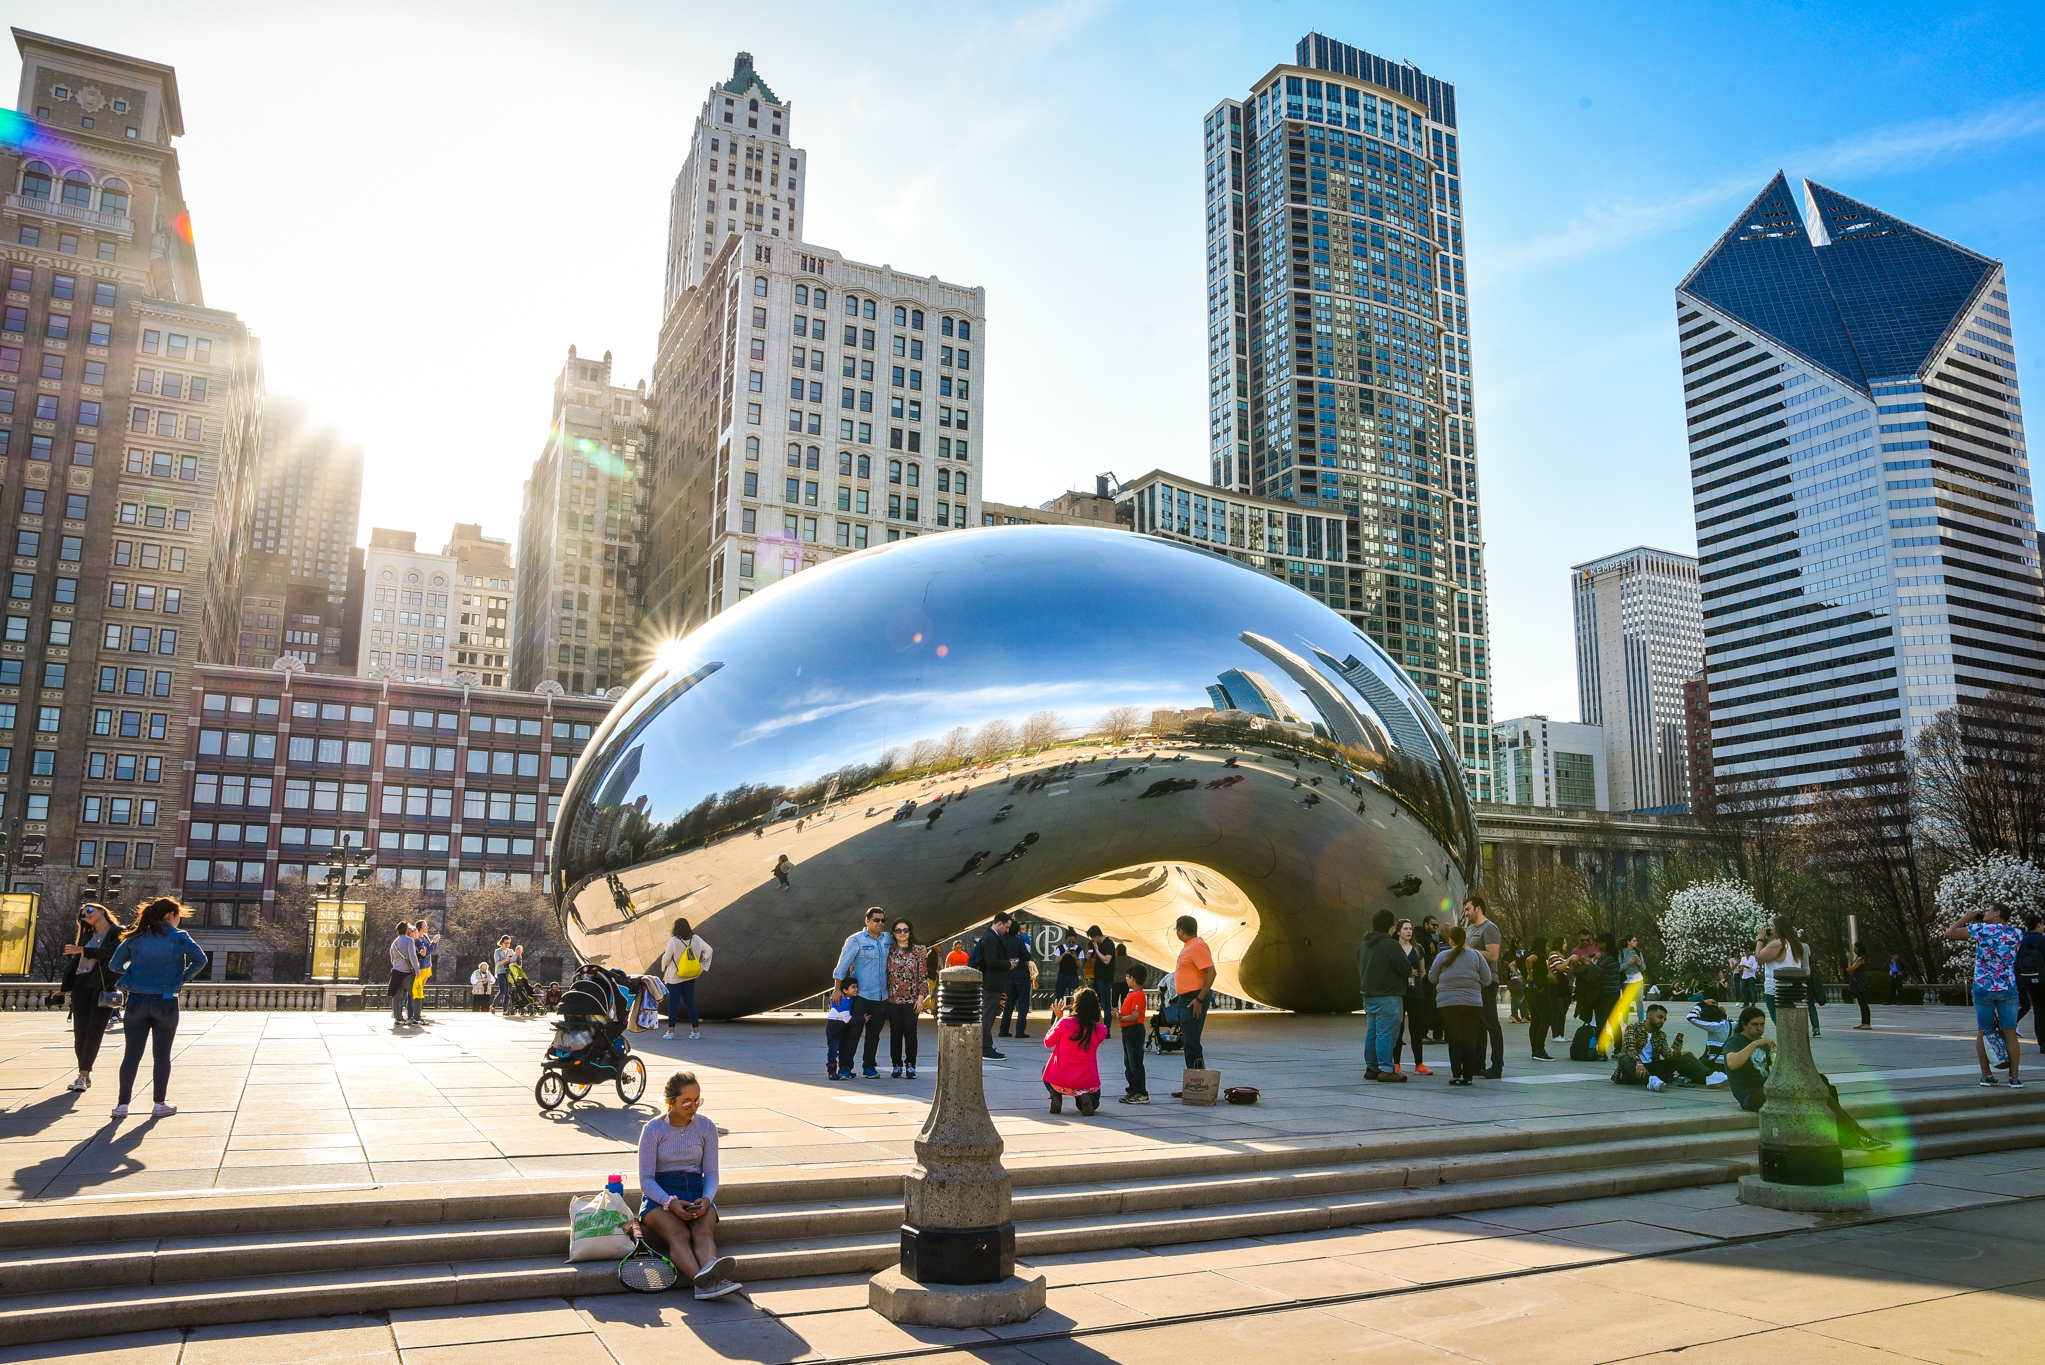 Summer Events In Chicago 2020.Chicago Events Calendar For 2019 Including Concerts And